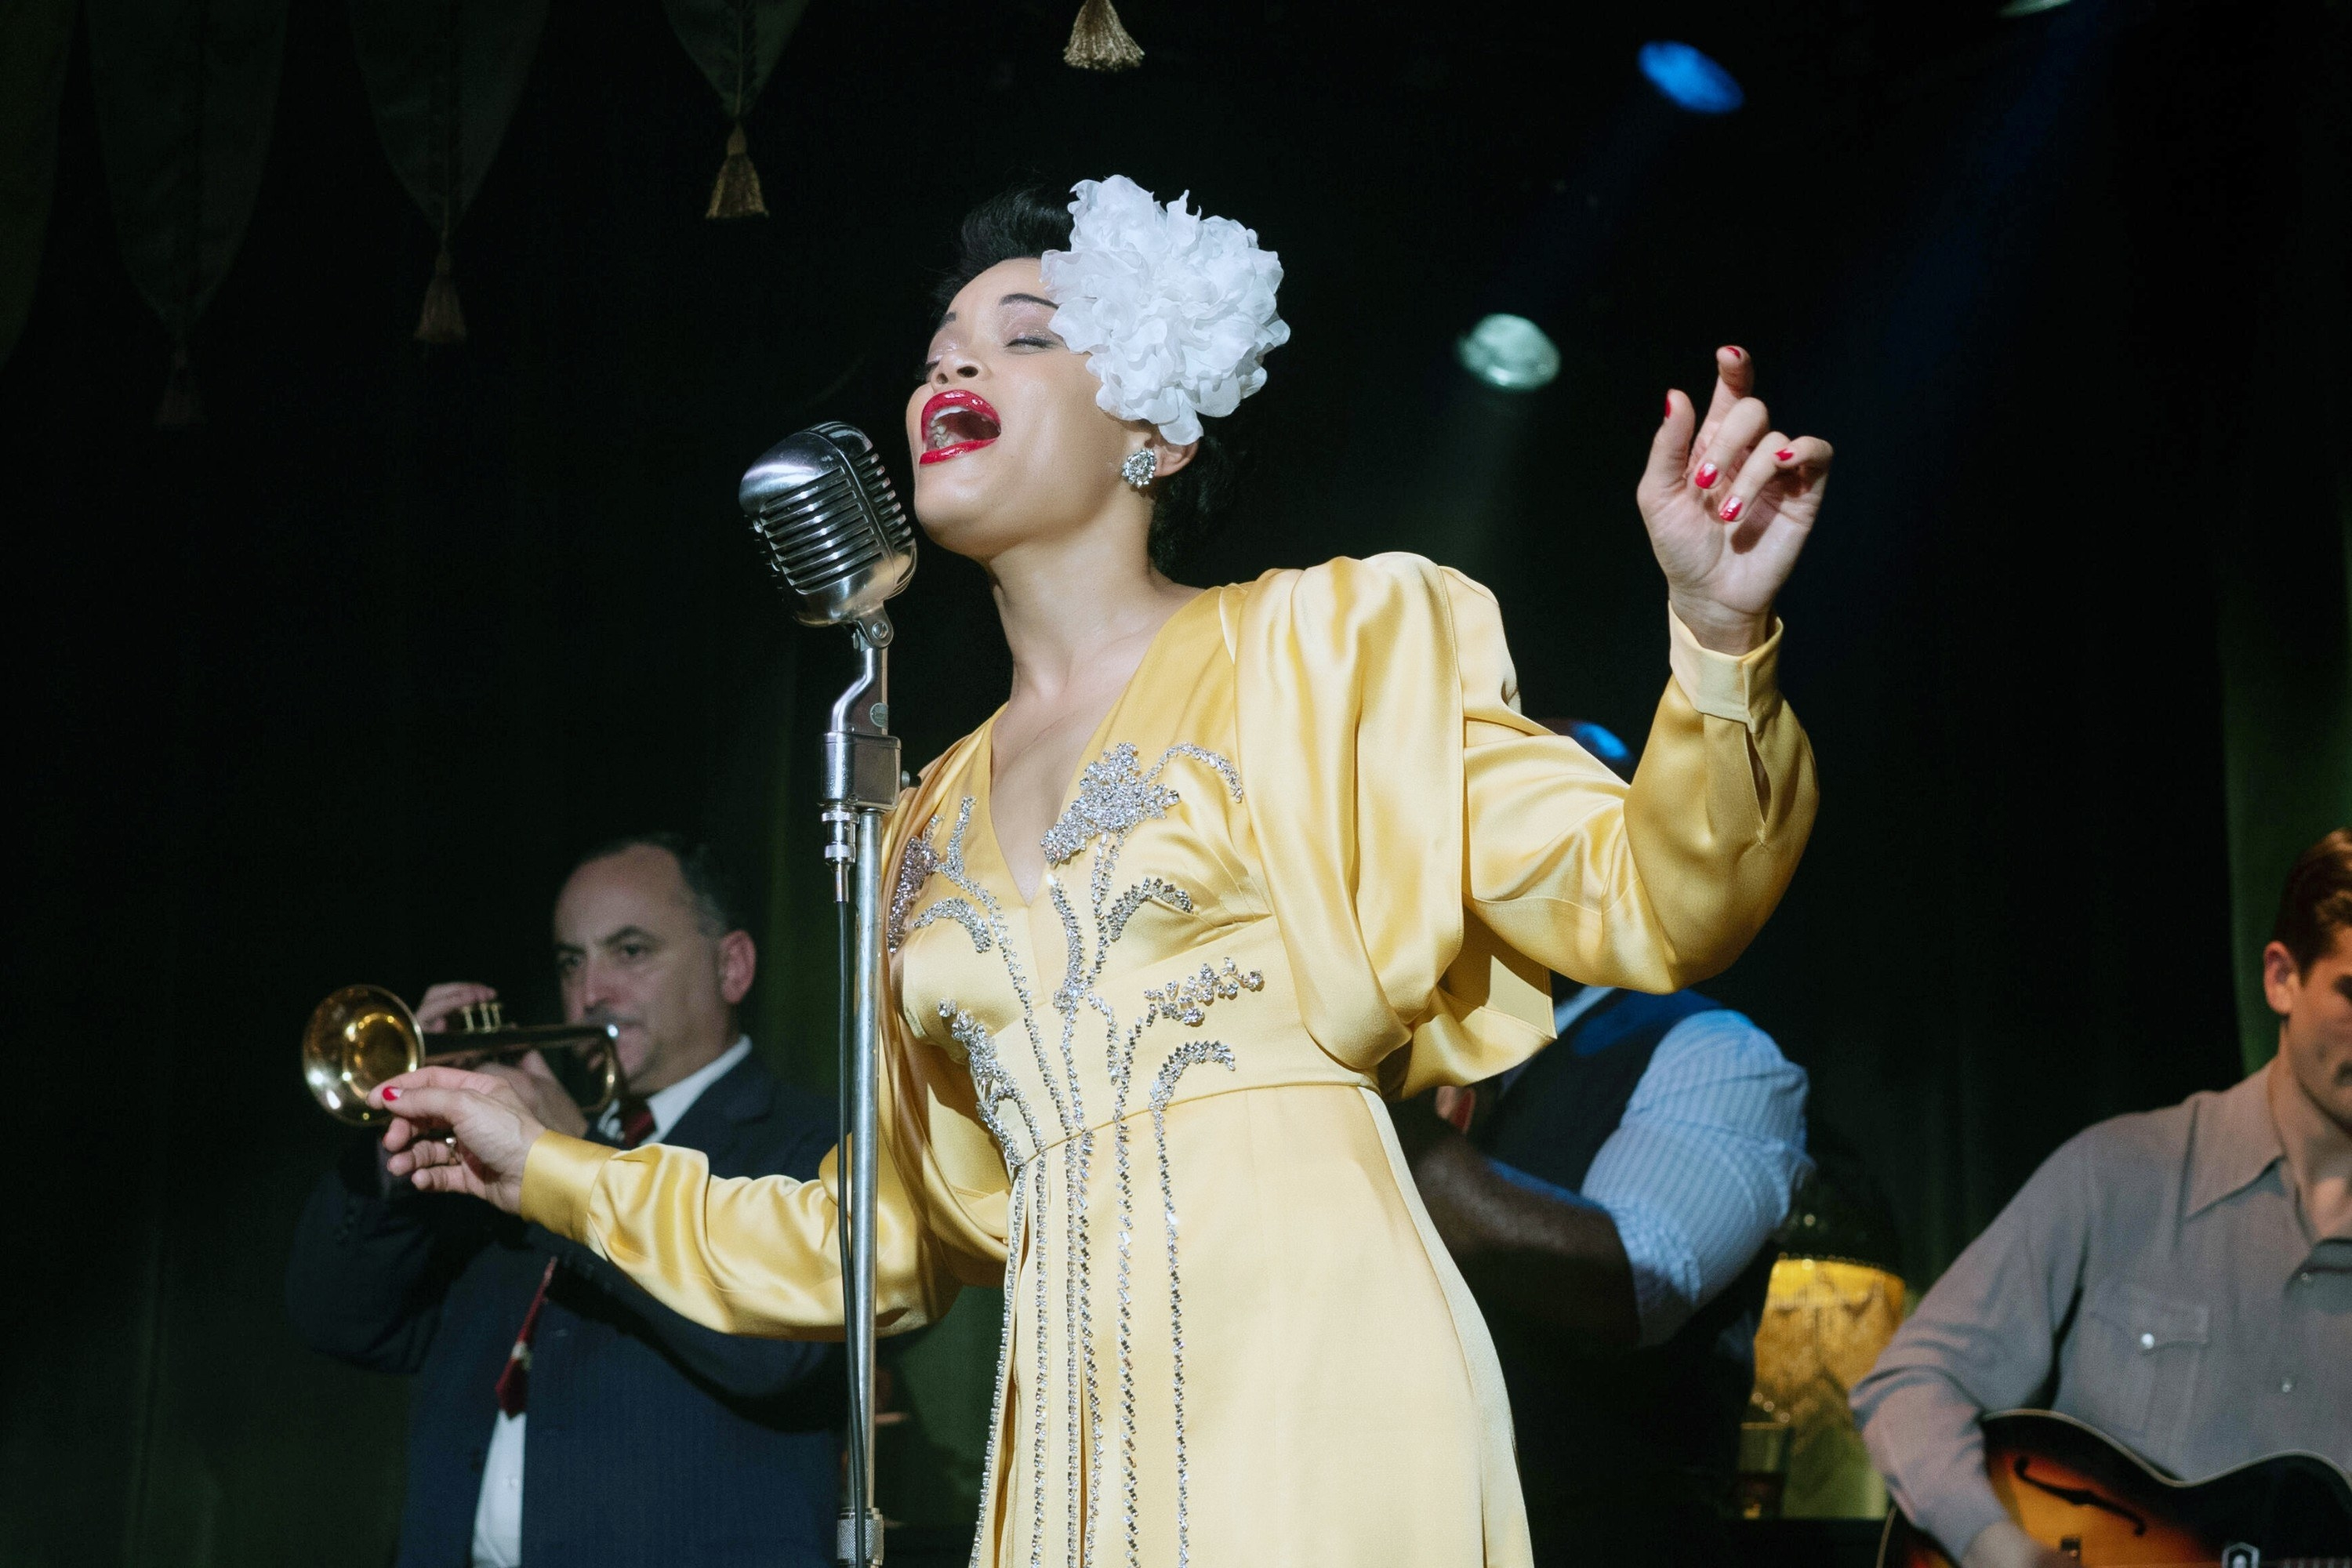 Andra performing on stage as Billie Holiday